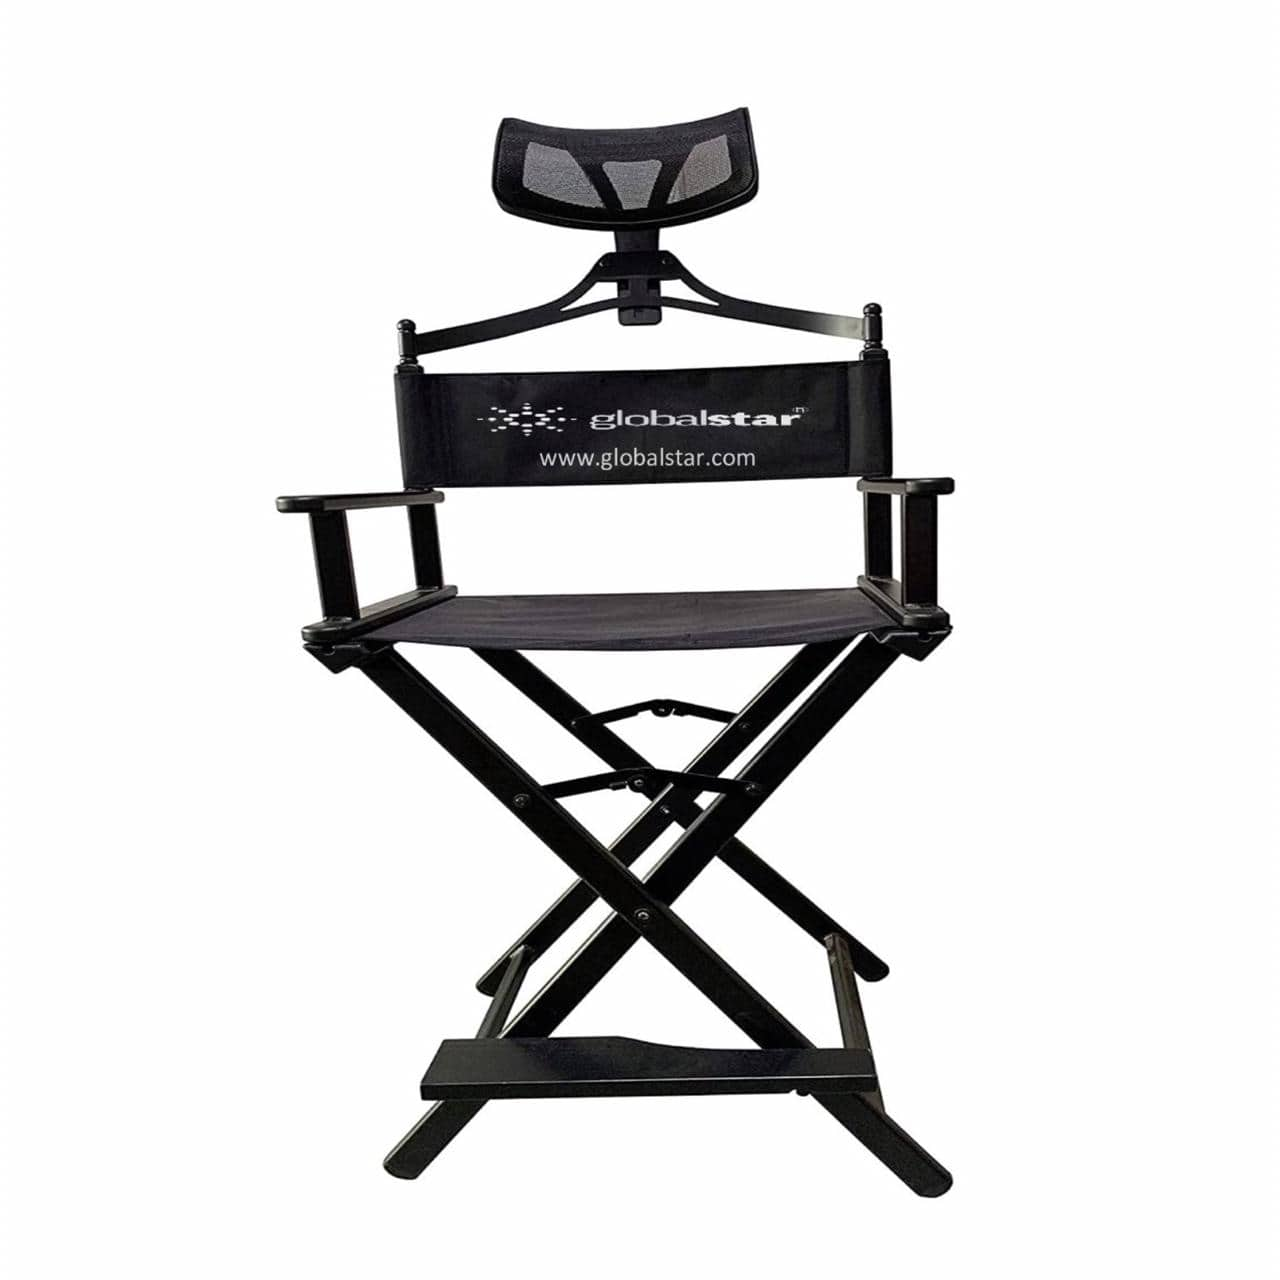 Globalstar Foldable Tall Makeup Chair With Headrest Color Black - MY739B